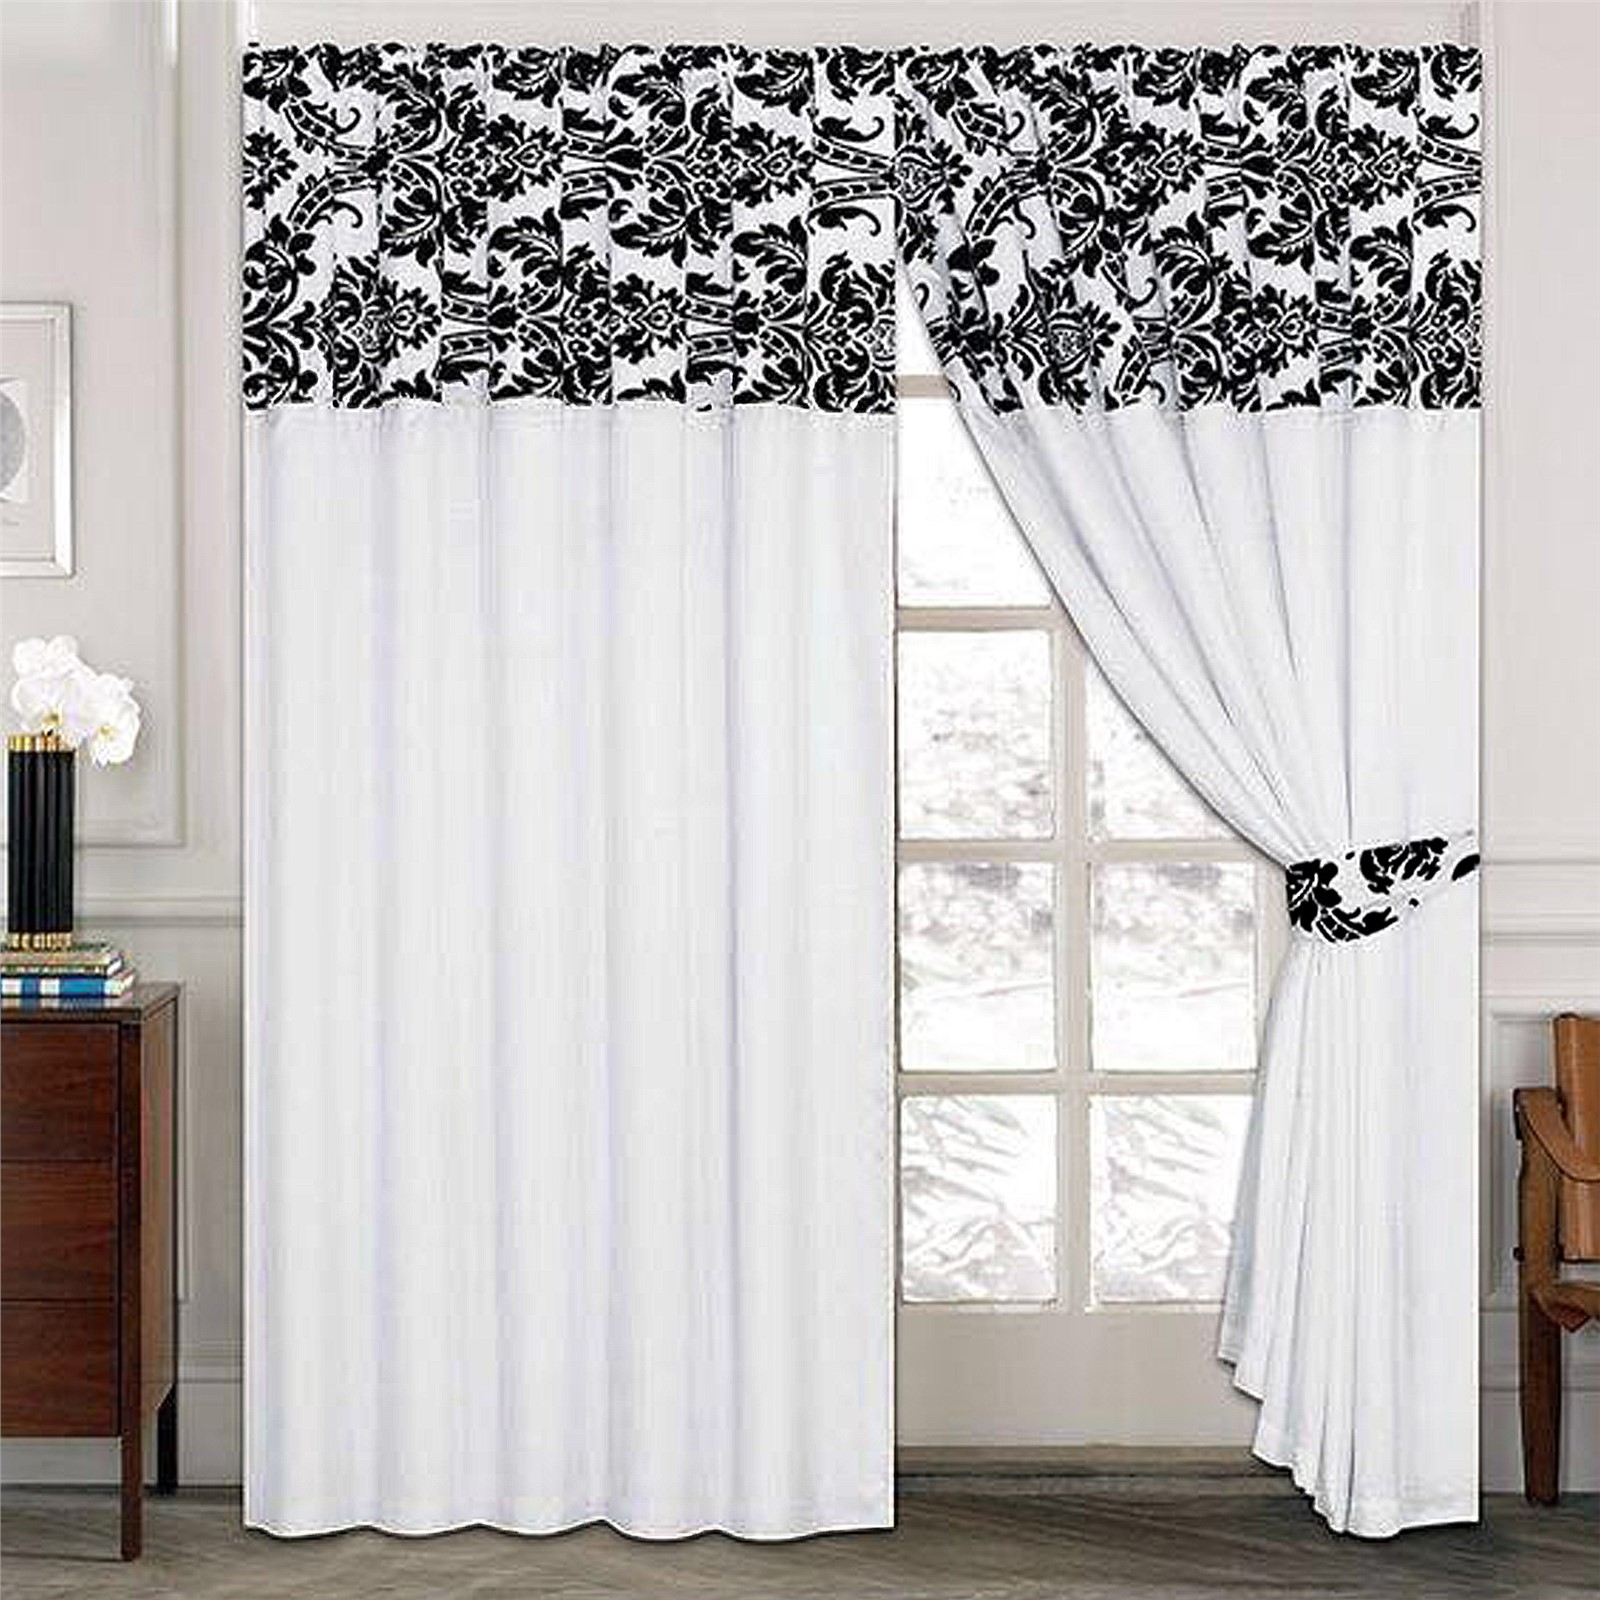 Luxury damask curtains pair of half flock pencil pleat window curtain ebay - Pictures of curtains ...